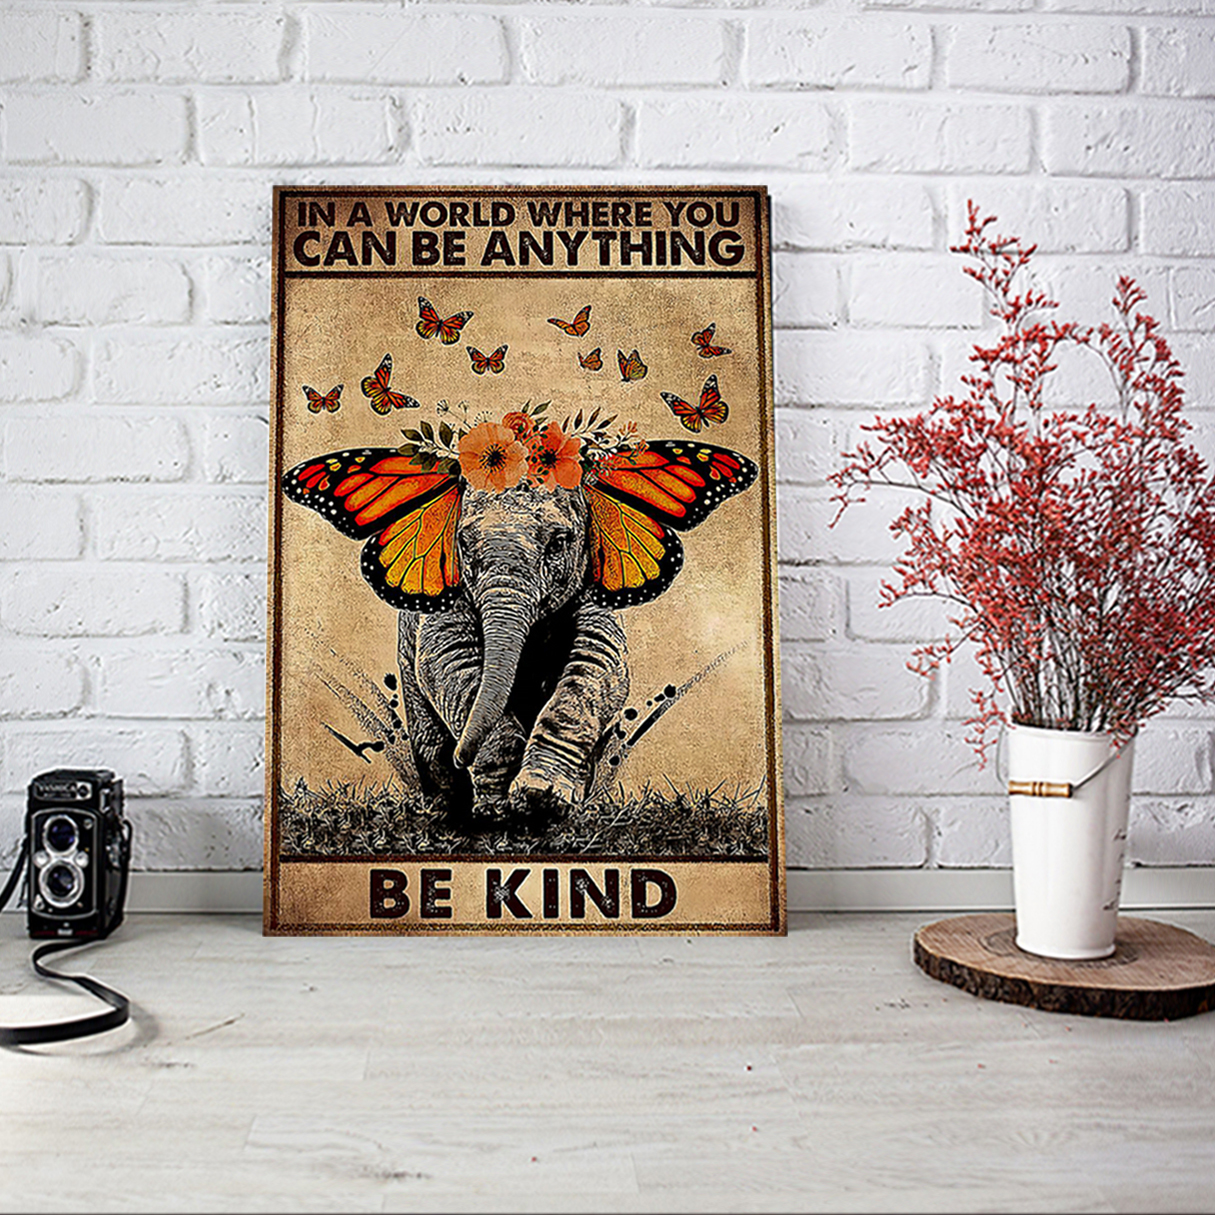 Butterfly elephant in a world where you can be anything be kind poster A2